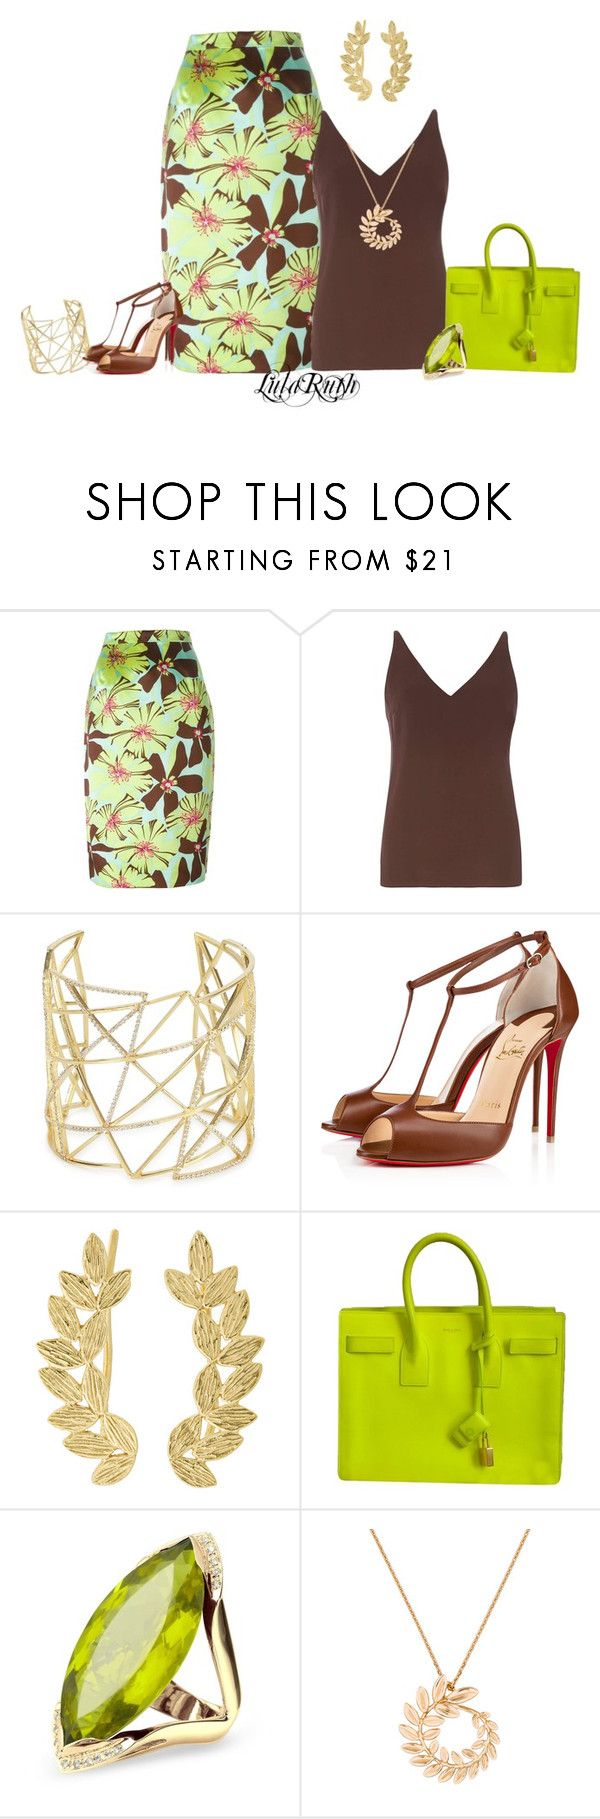 """""""Chartreuse Set"""" by melanie-cross ❤ liked on Polyvore featuring Prada, Dorothy Perkins, Joanna Laura Constantine, Christian Louboutin, Eddera, Yves Saint Laurent, Forzieri and Chopard"""